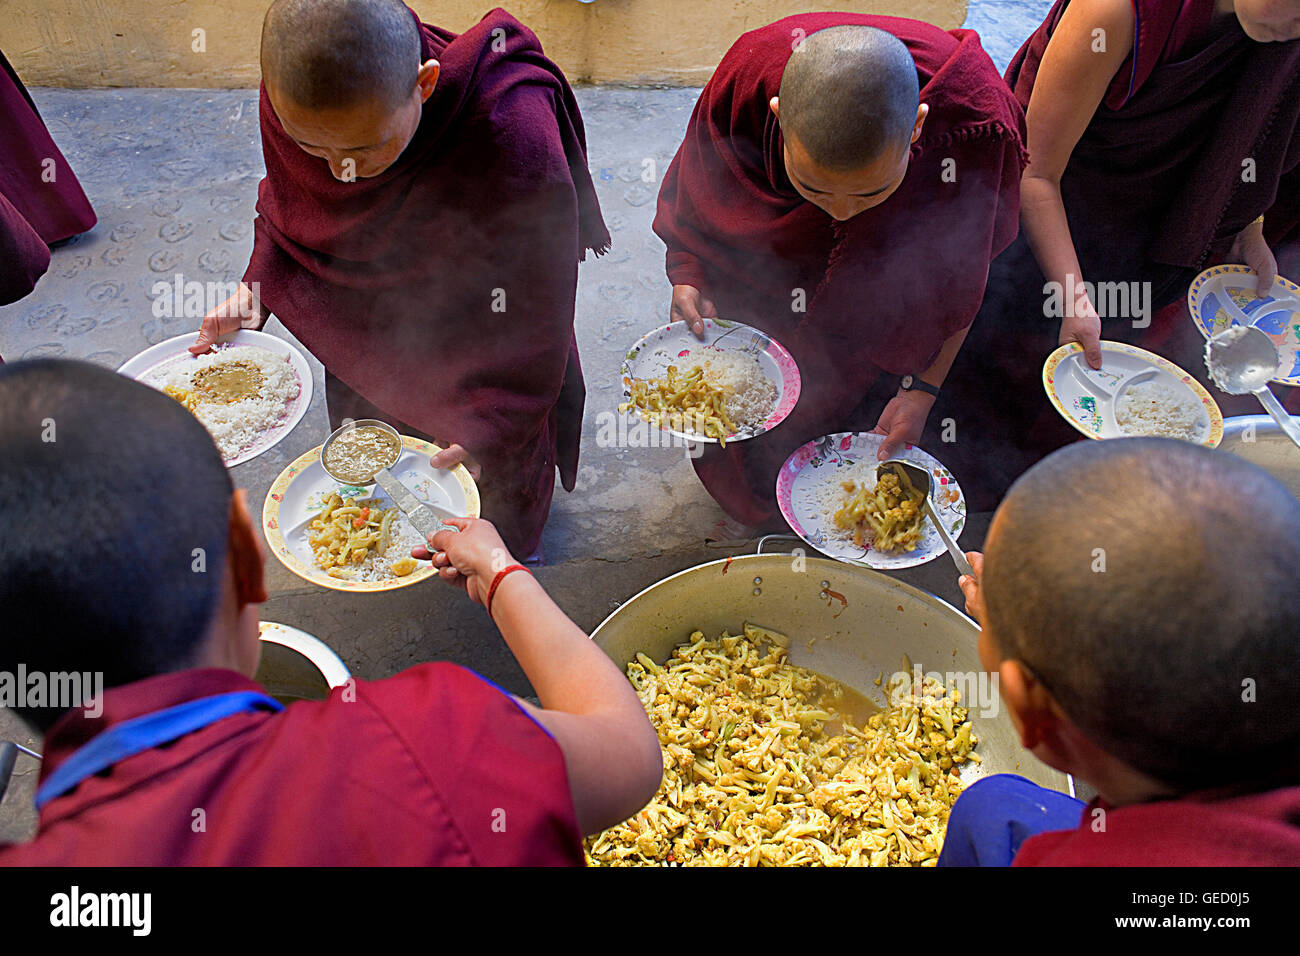 Nuns.Lunch.Geden Choeling Nunnery, McLeod Ganj, Dharamsala, Himachal Pradesh state, India, Asia - Stock Image